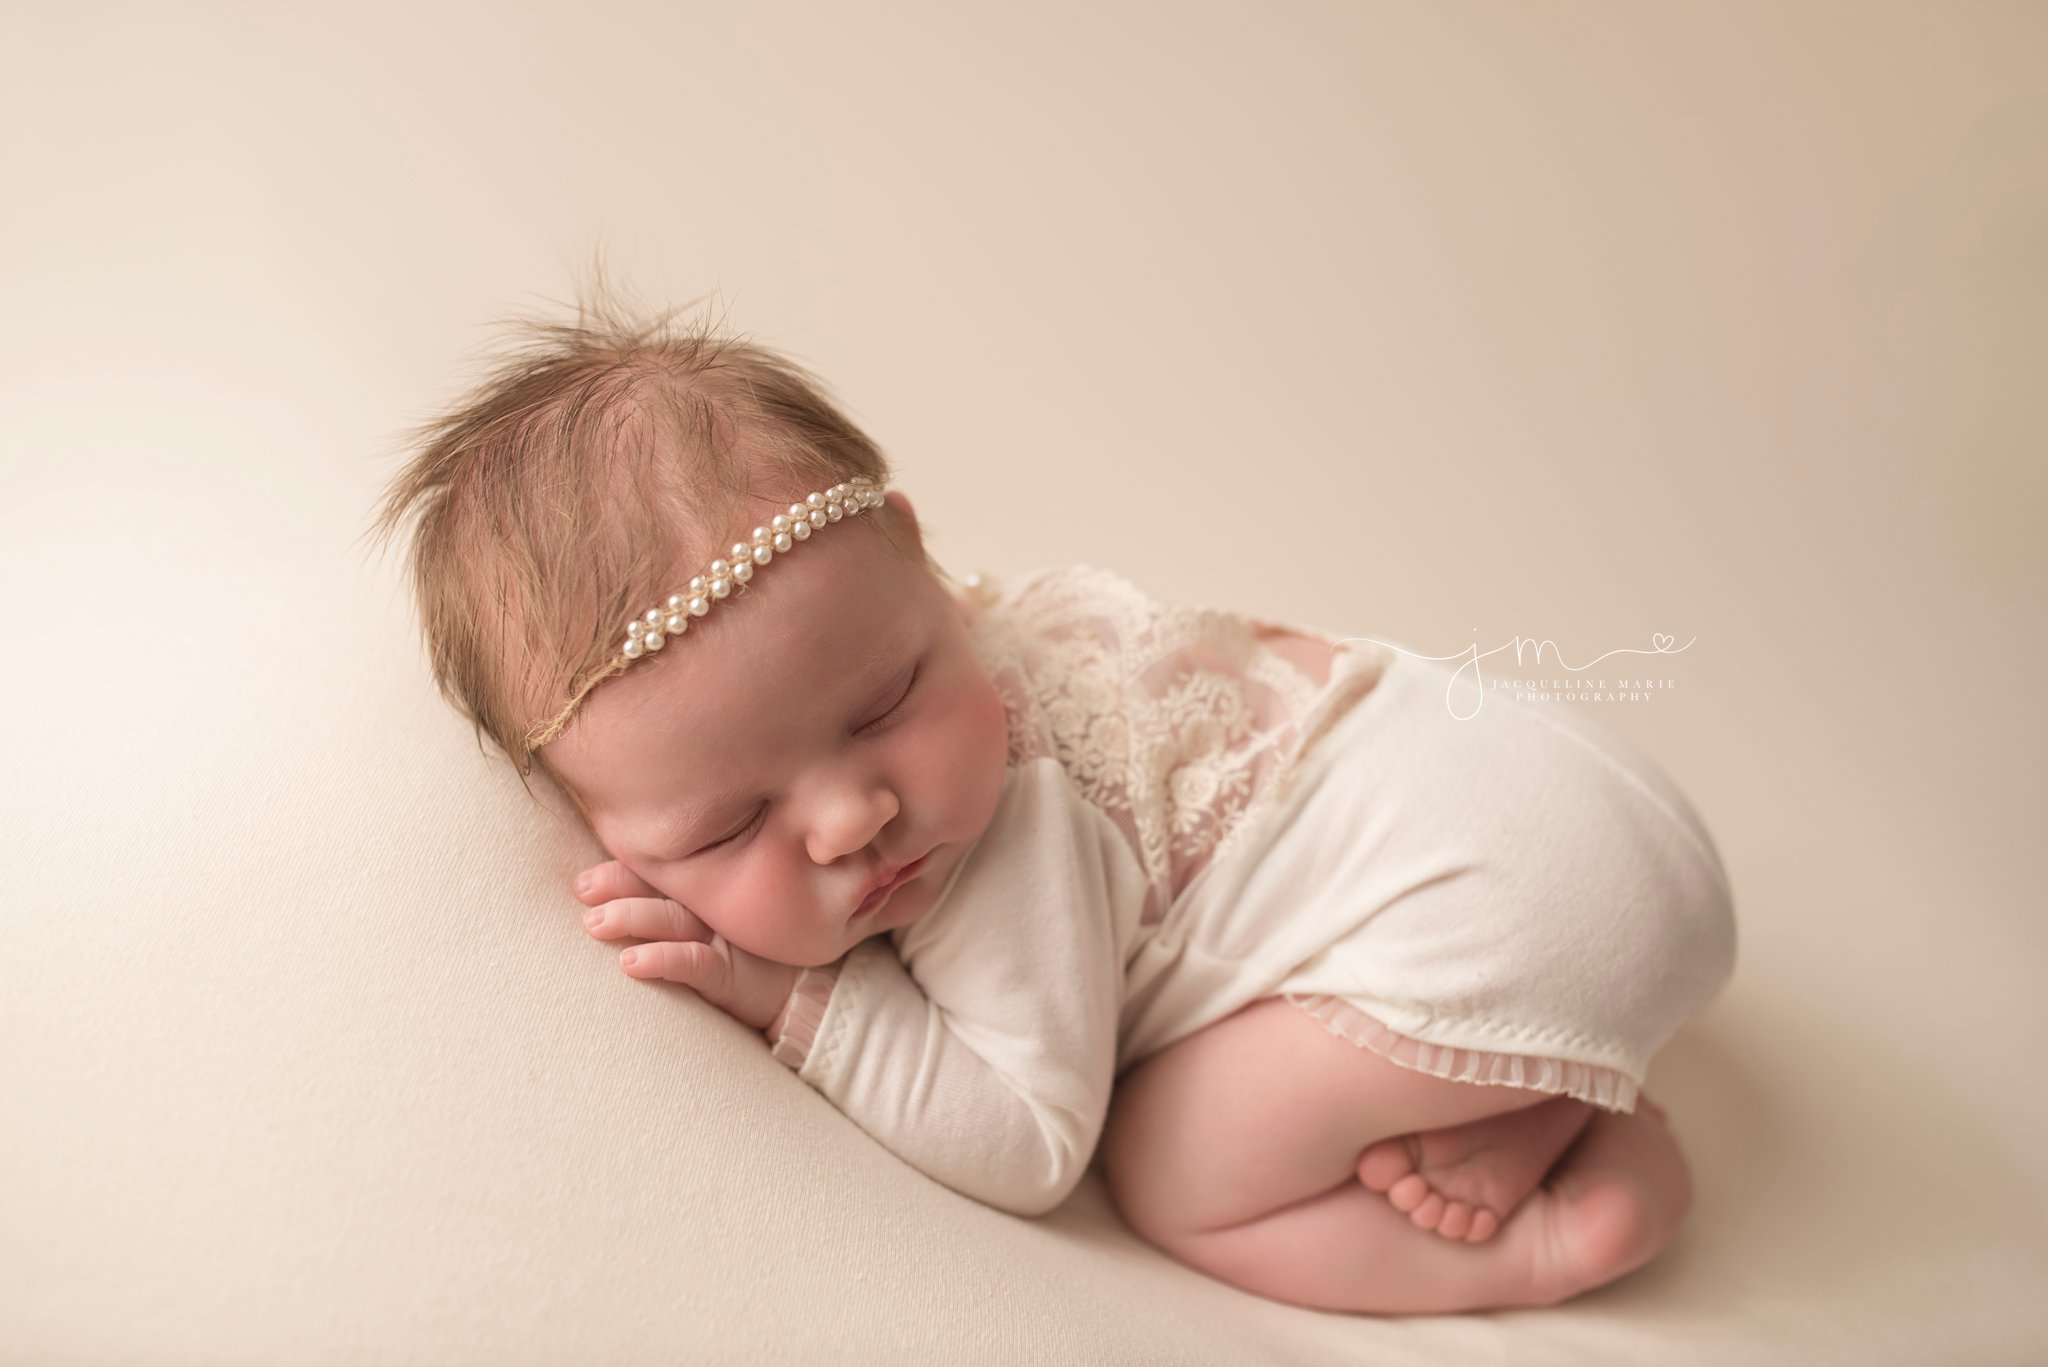 newborn baby girl is sleeping in cream romper at 12 days old for newborn photography portraits in columbus ohio